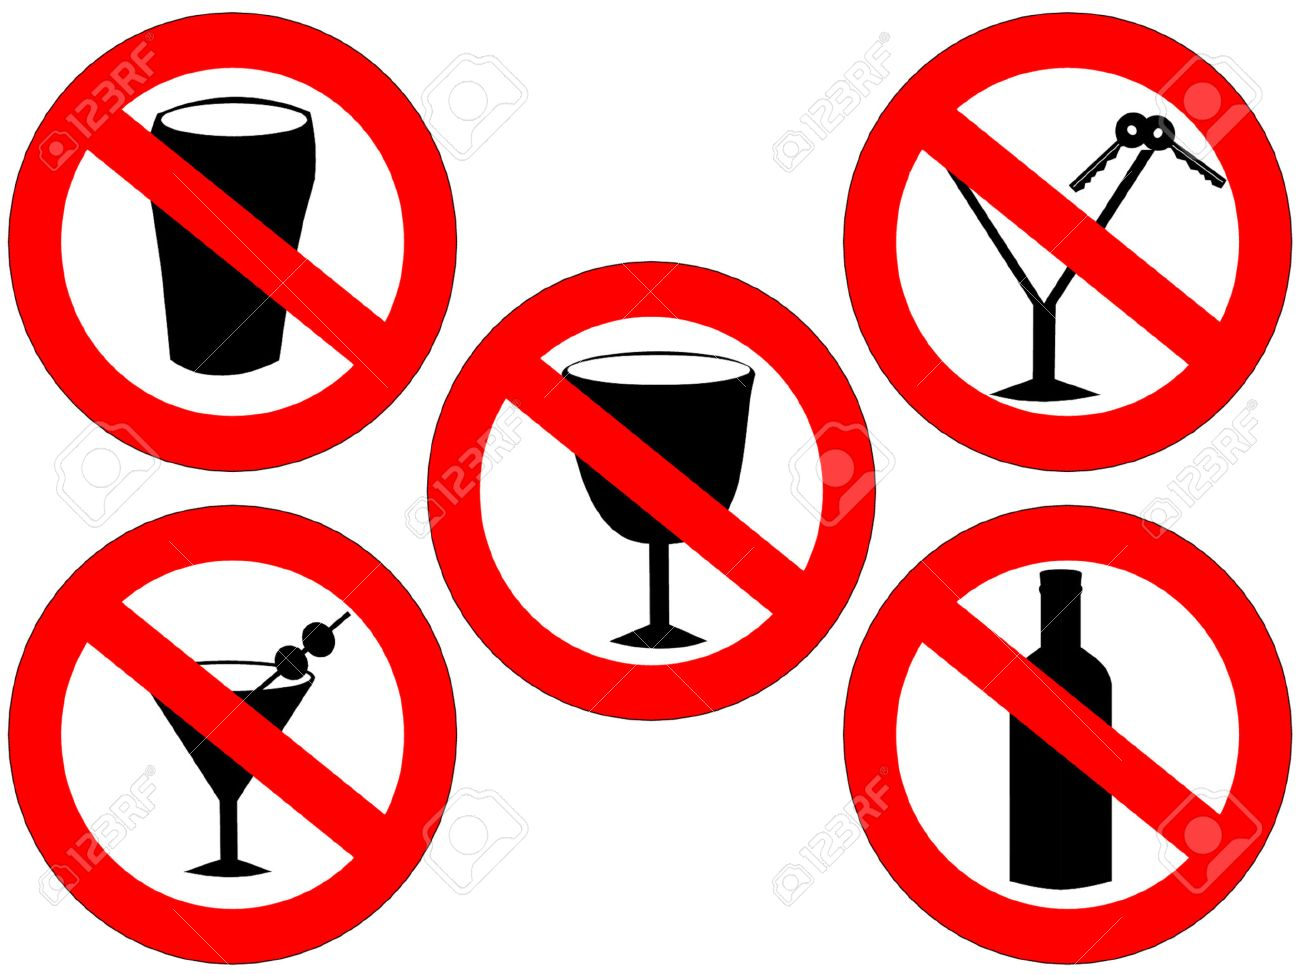 no alcohol and drink driving forbidden signs Stock Vector - 667340